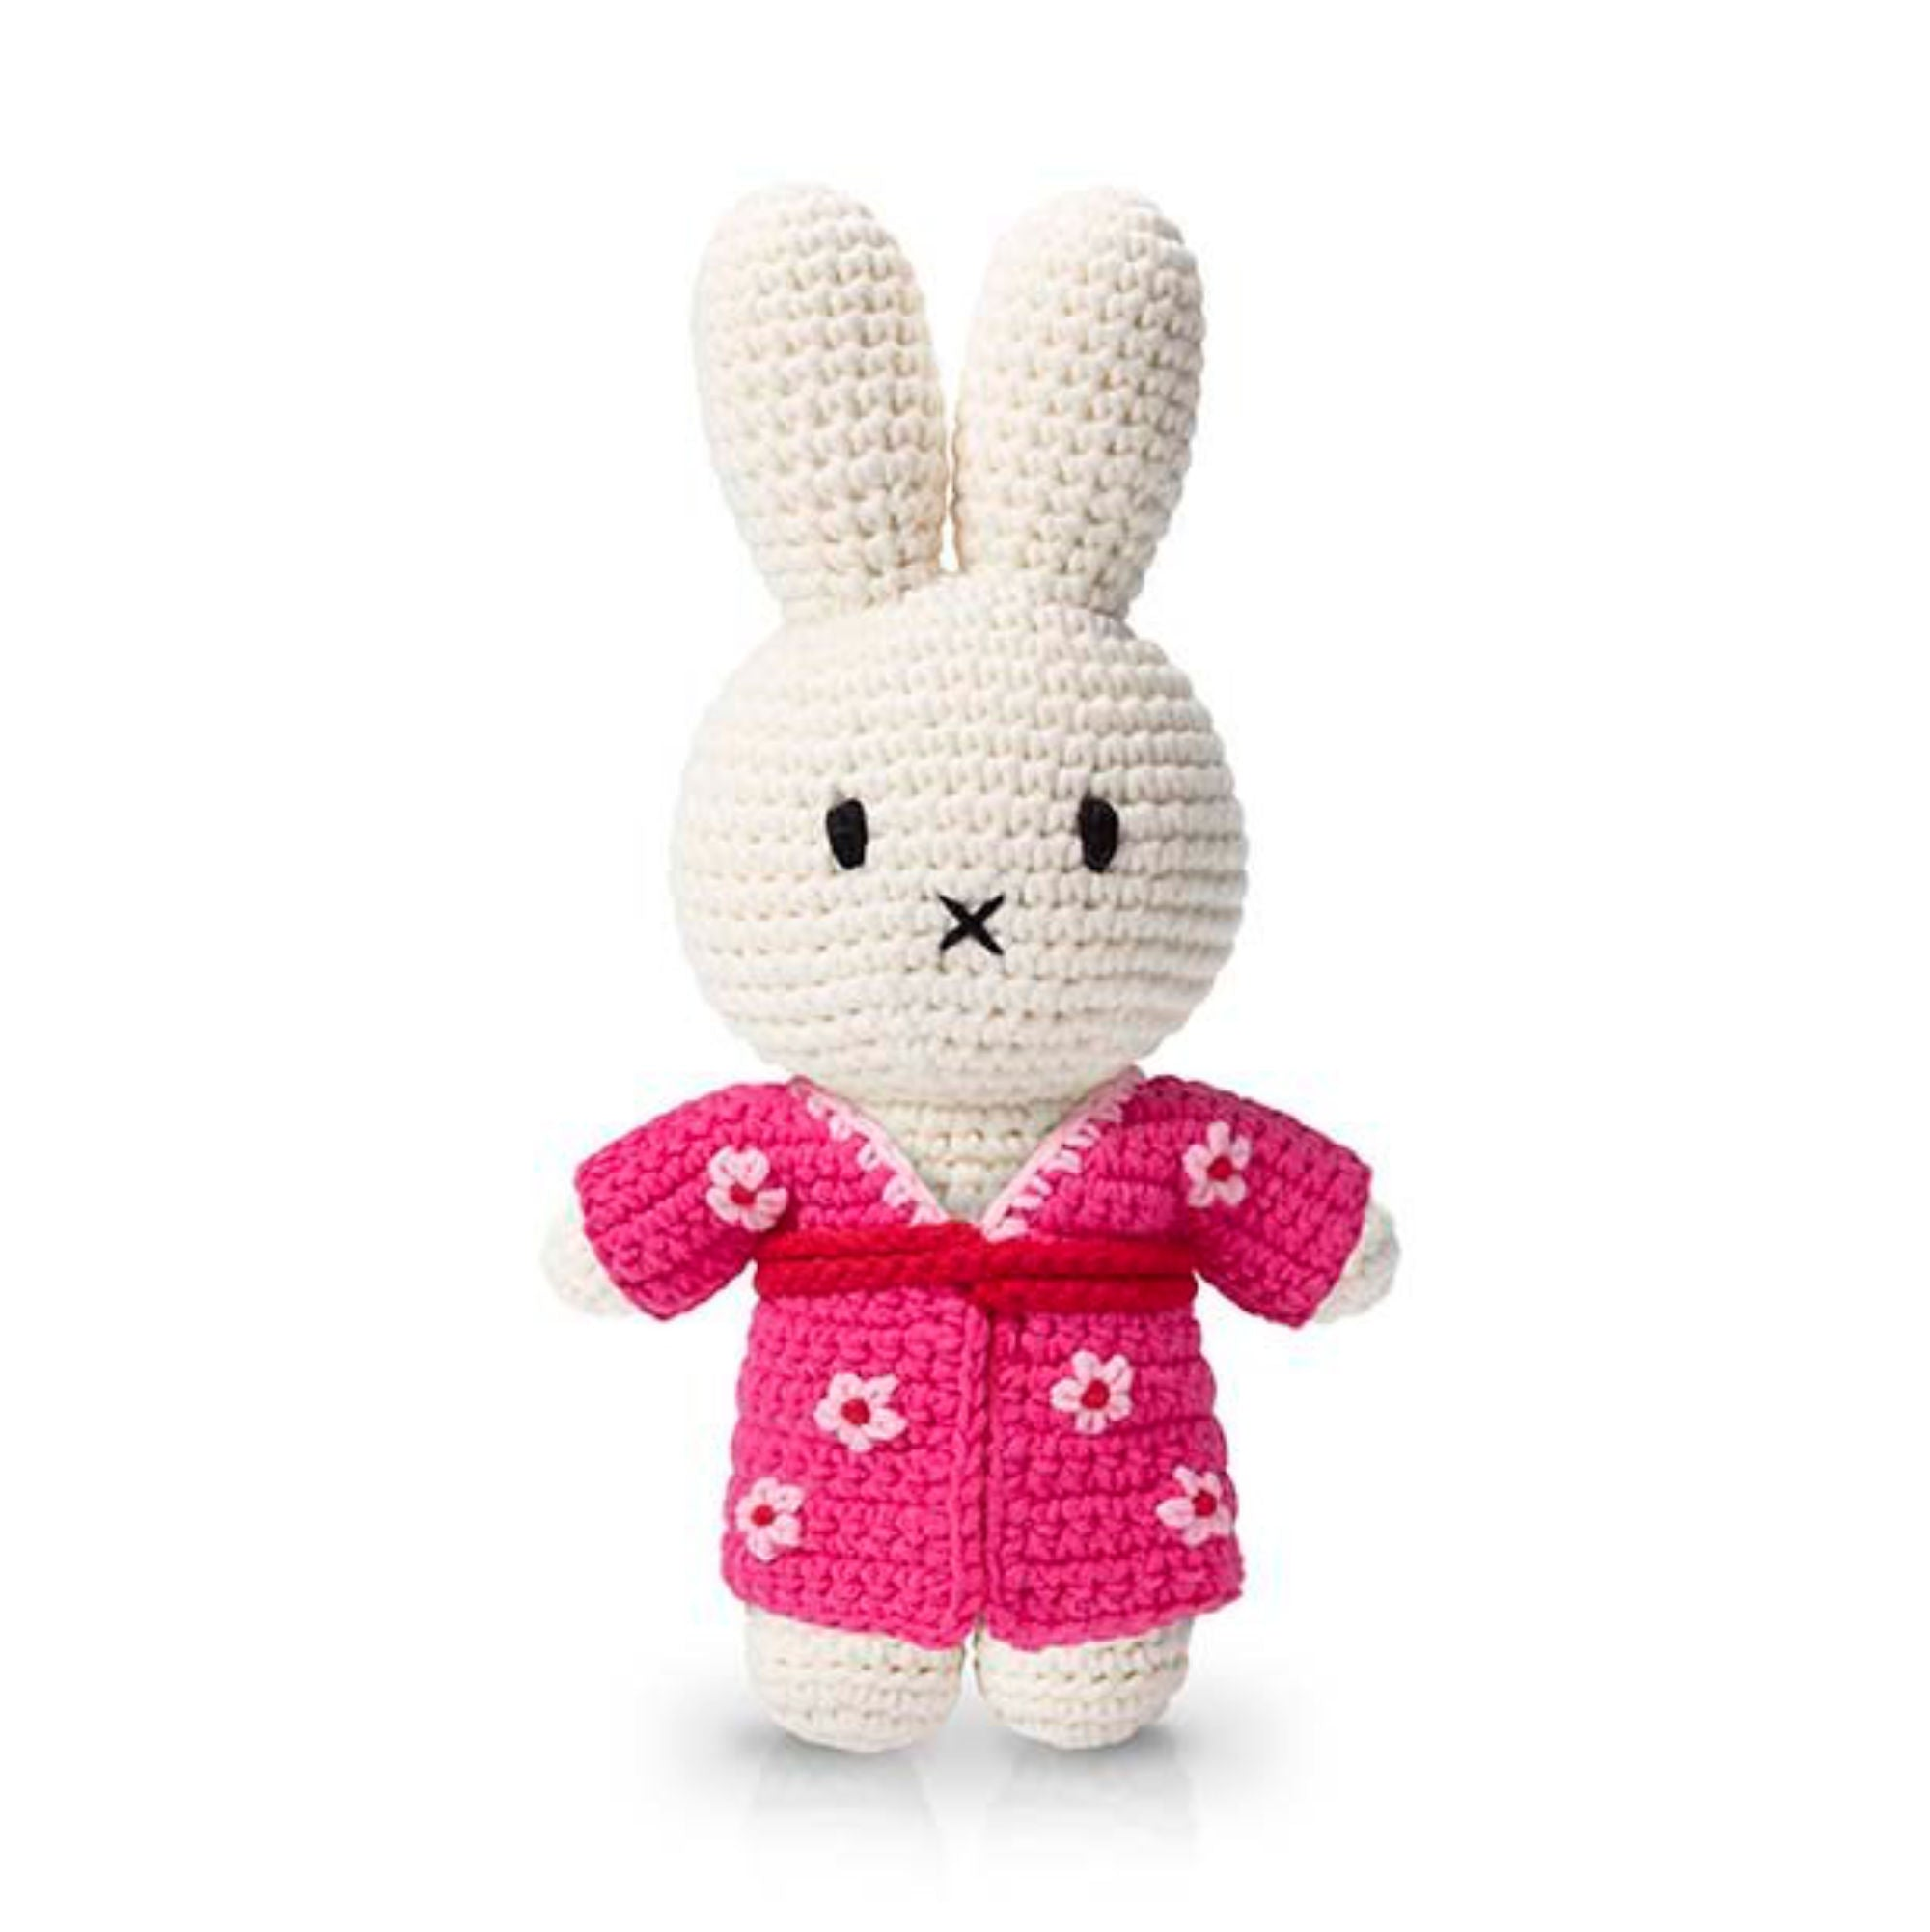 Just Dutch Handmade Dolls, Miffy and her kimono